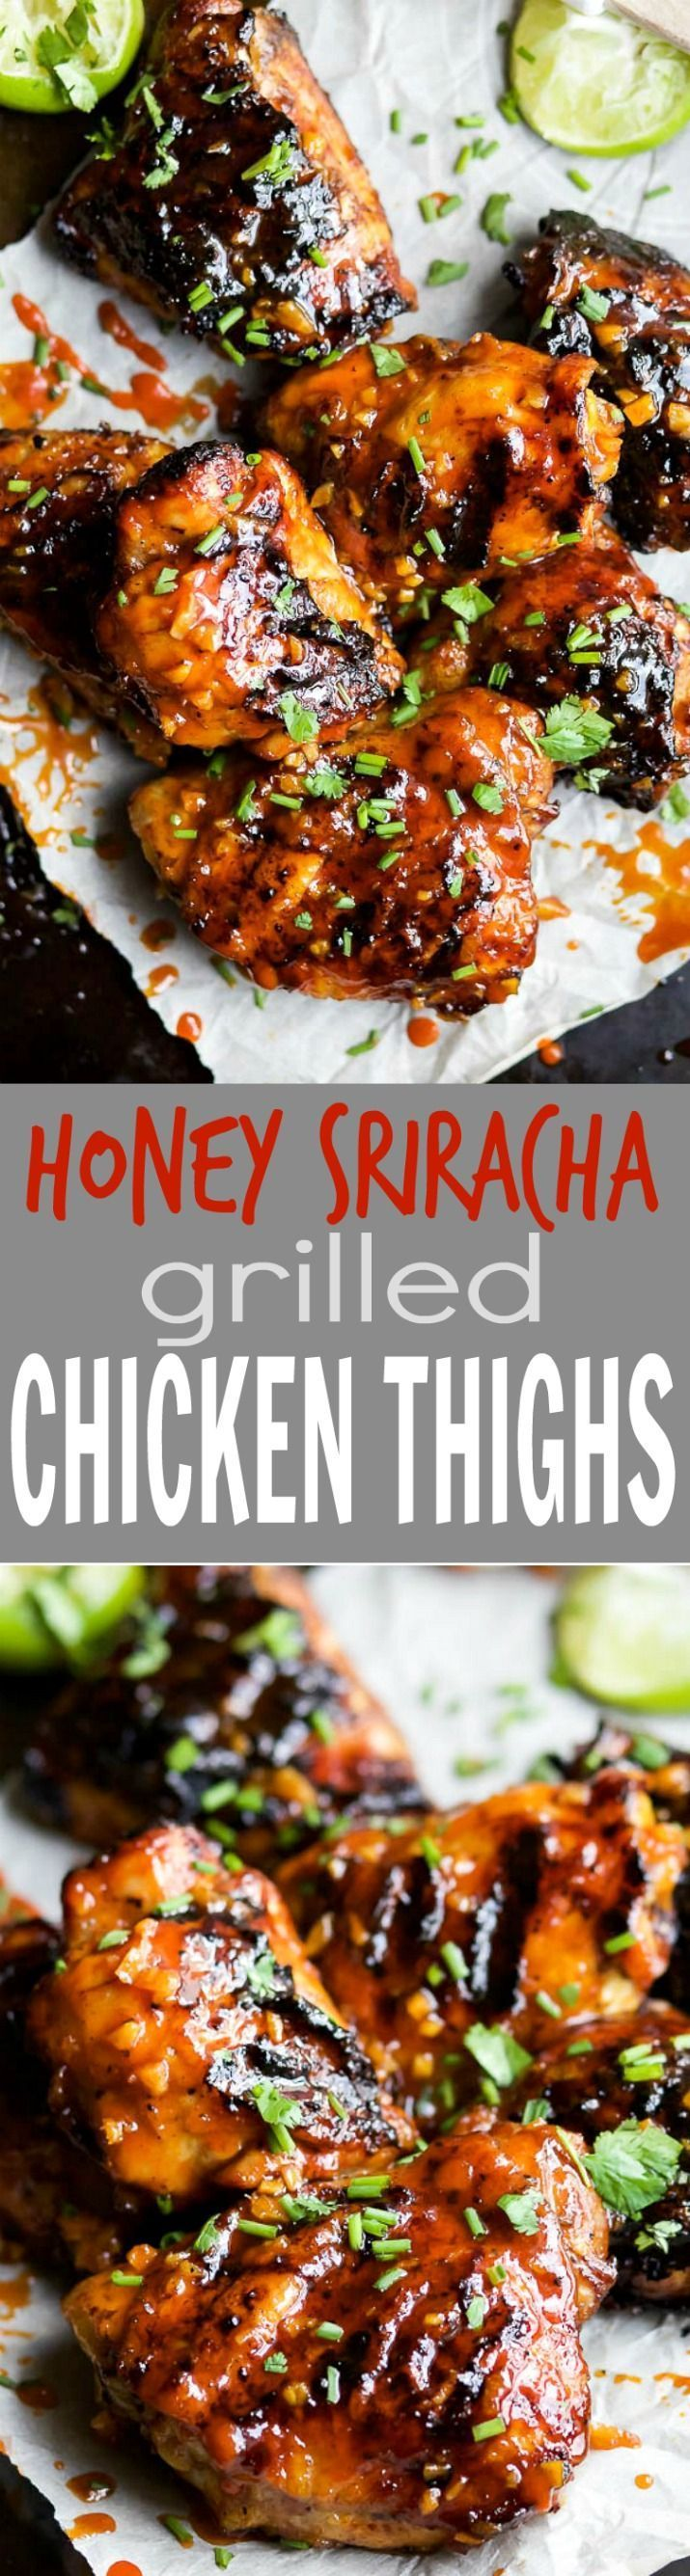 Sweet & Spicy HONEY SRIRACHA GRILLED CHICKEN THIGHS - juicy smoky Chicken Thighs slathered in an easy Honey Sriracha glaze that will make you swoon! I guarantee these will be a hit!   joyfulhealthyeats...   #ad   gluten free recipes